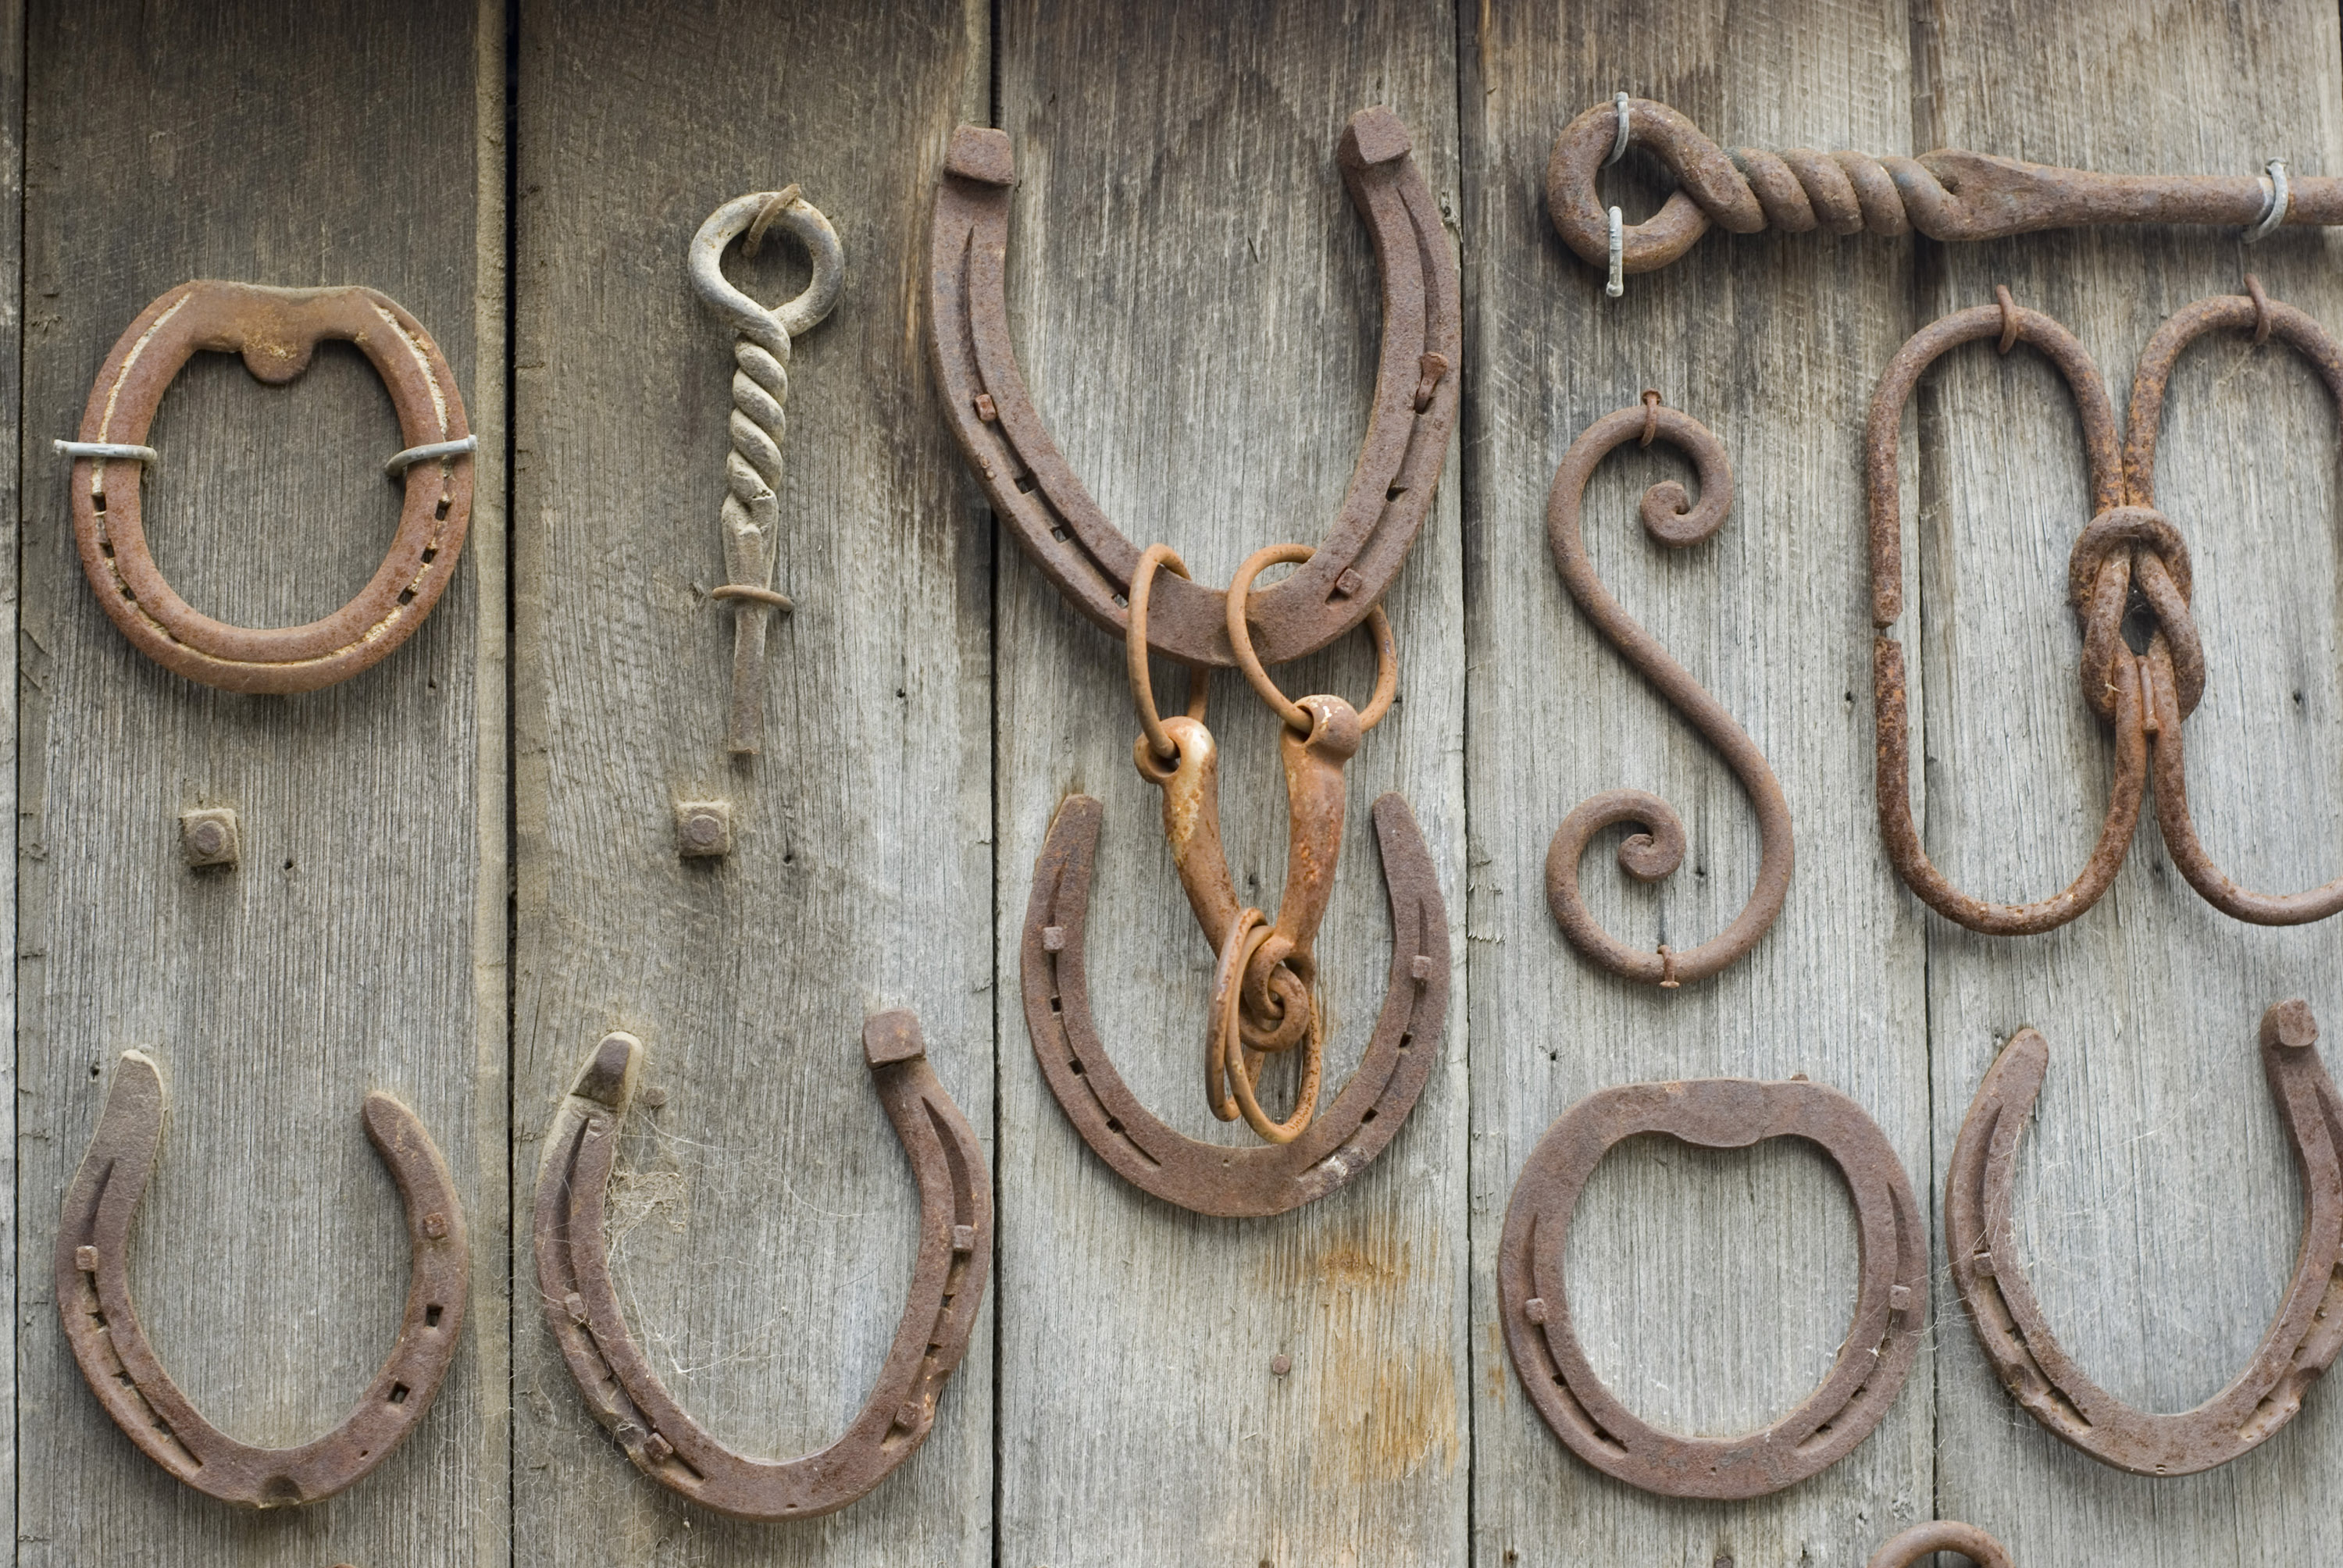 Horseshoes 3396 stockarch free stock photos for Where to buy horseshoes for crafts